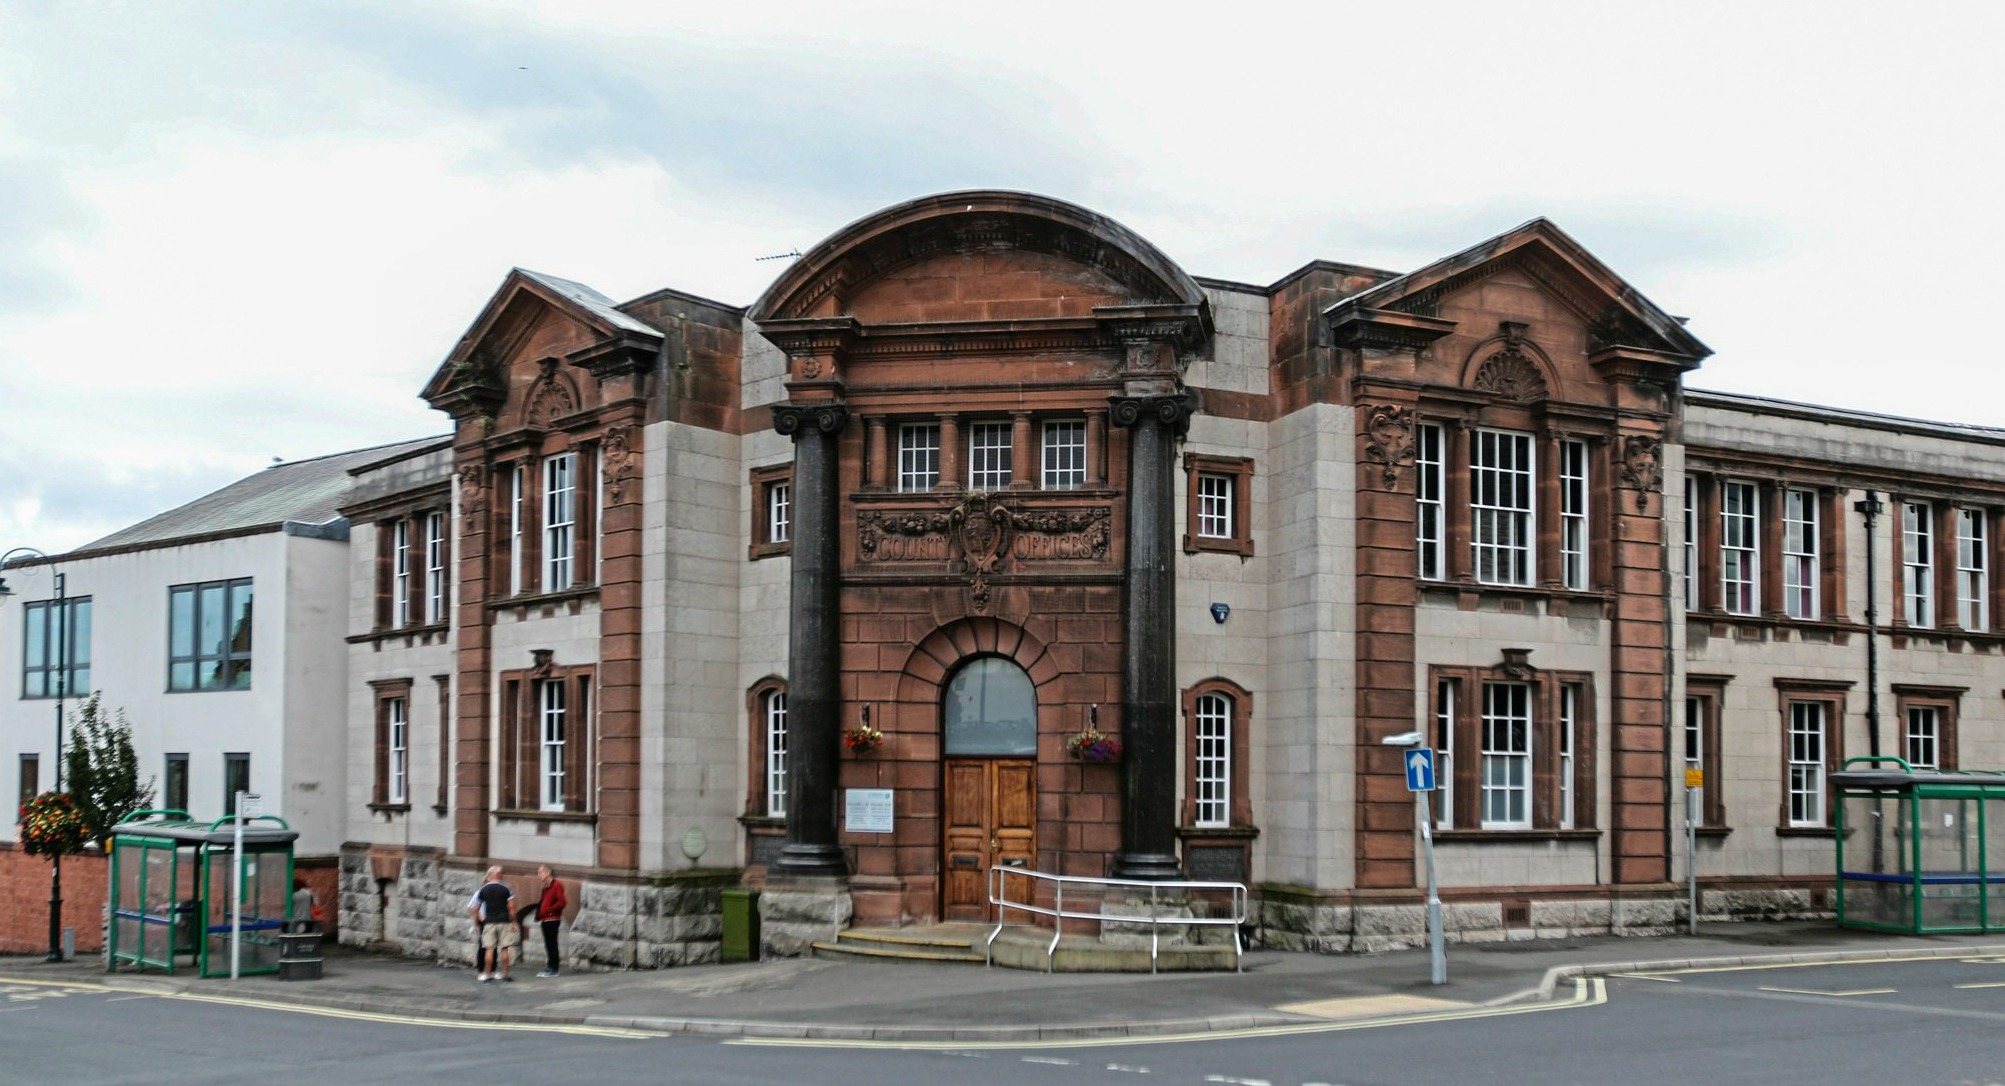 Coroners Court in Ruthin